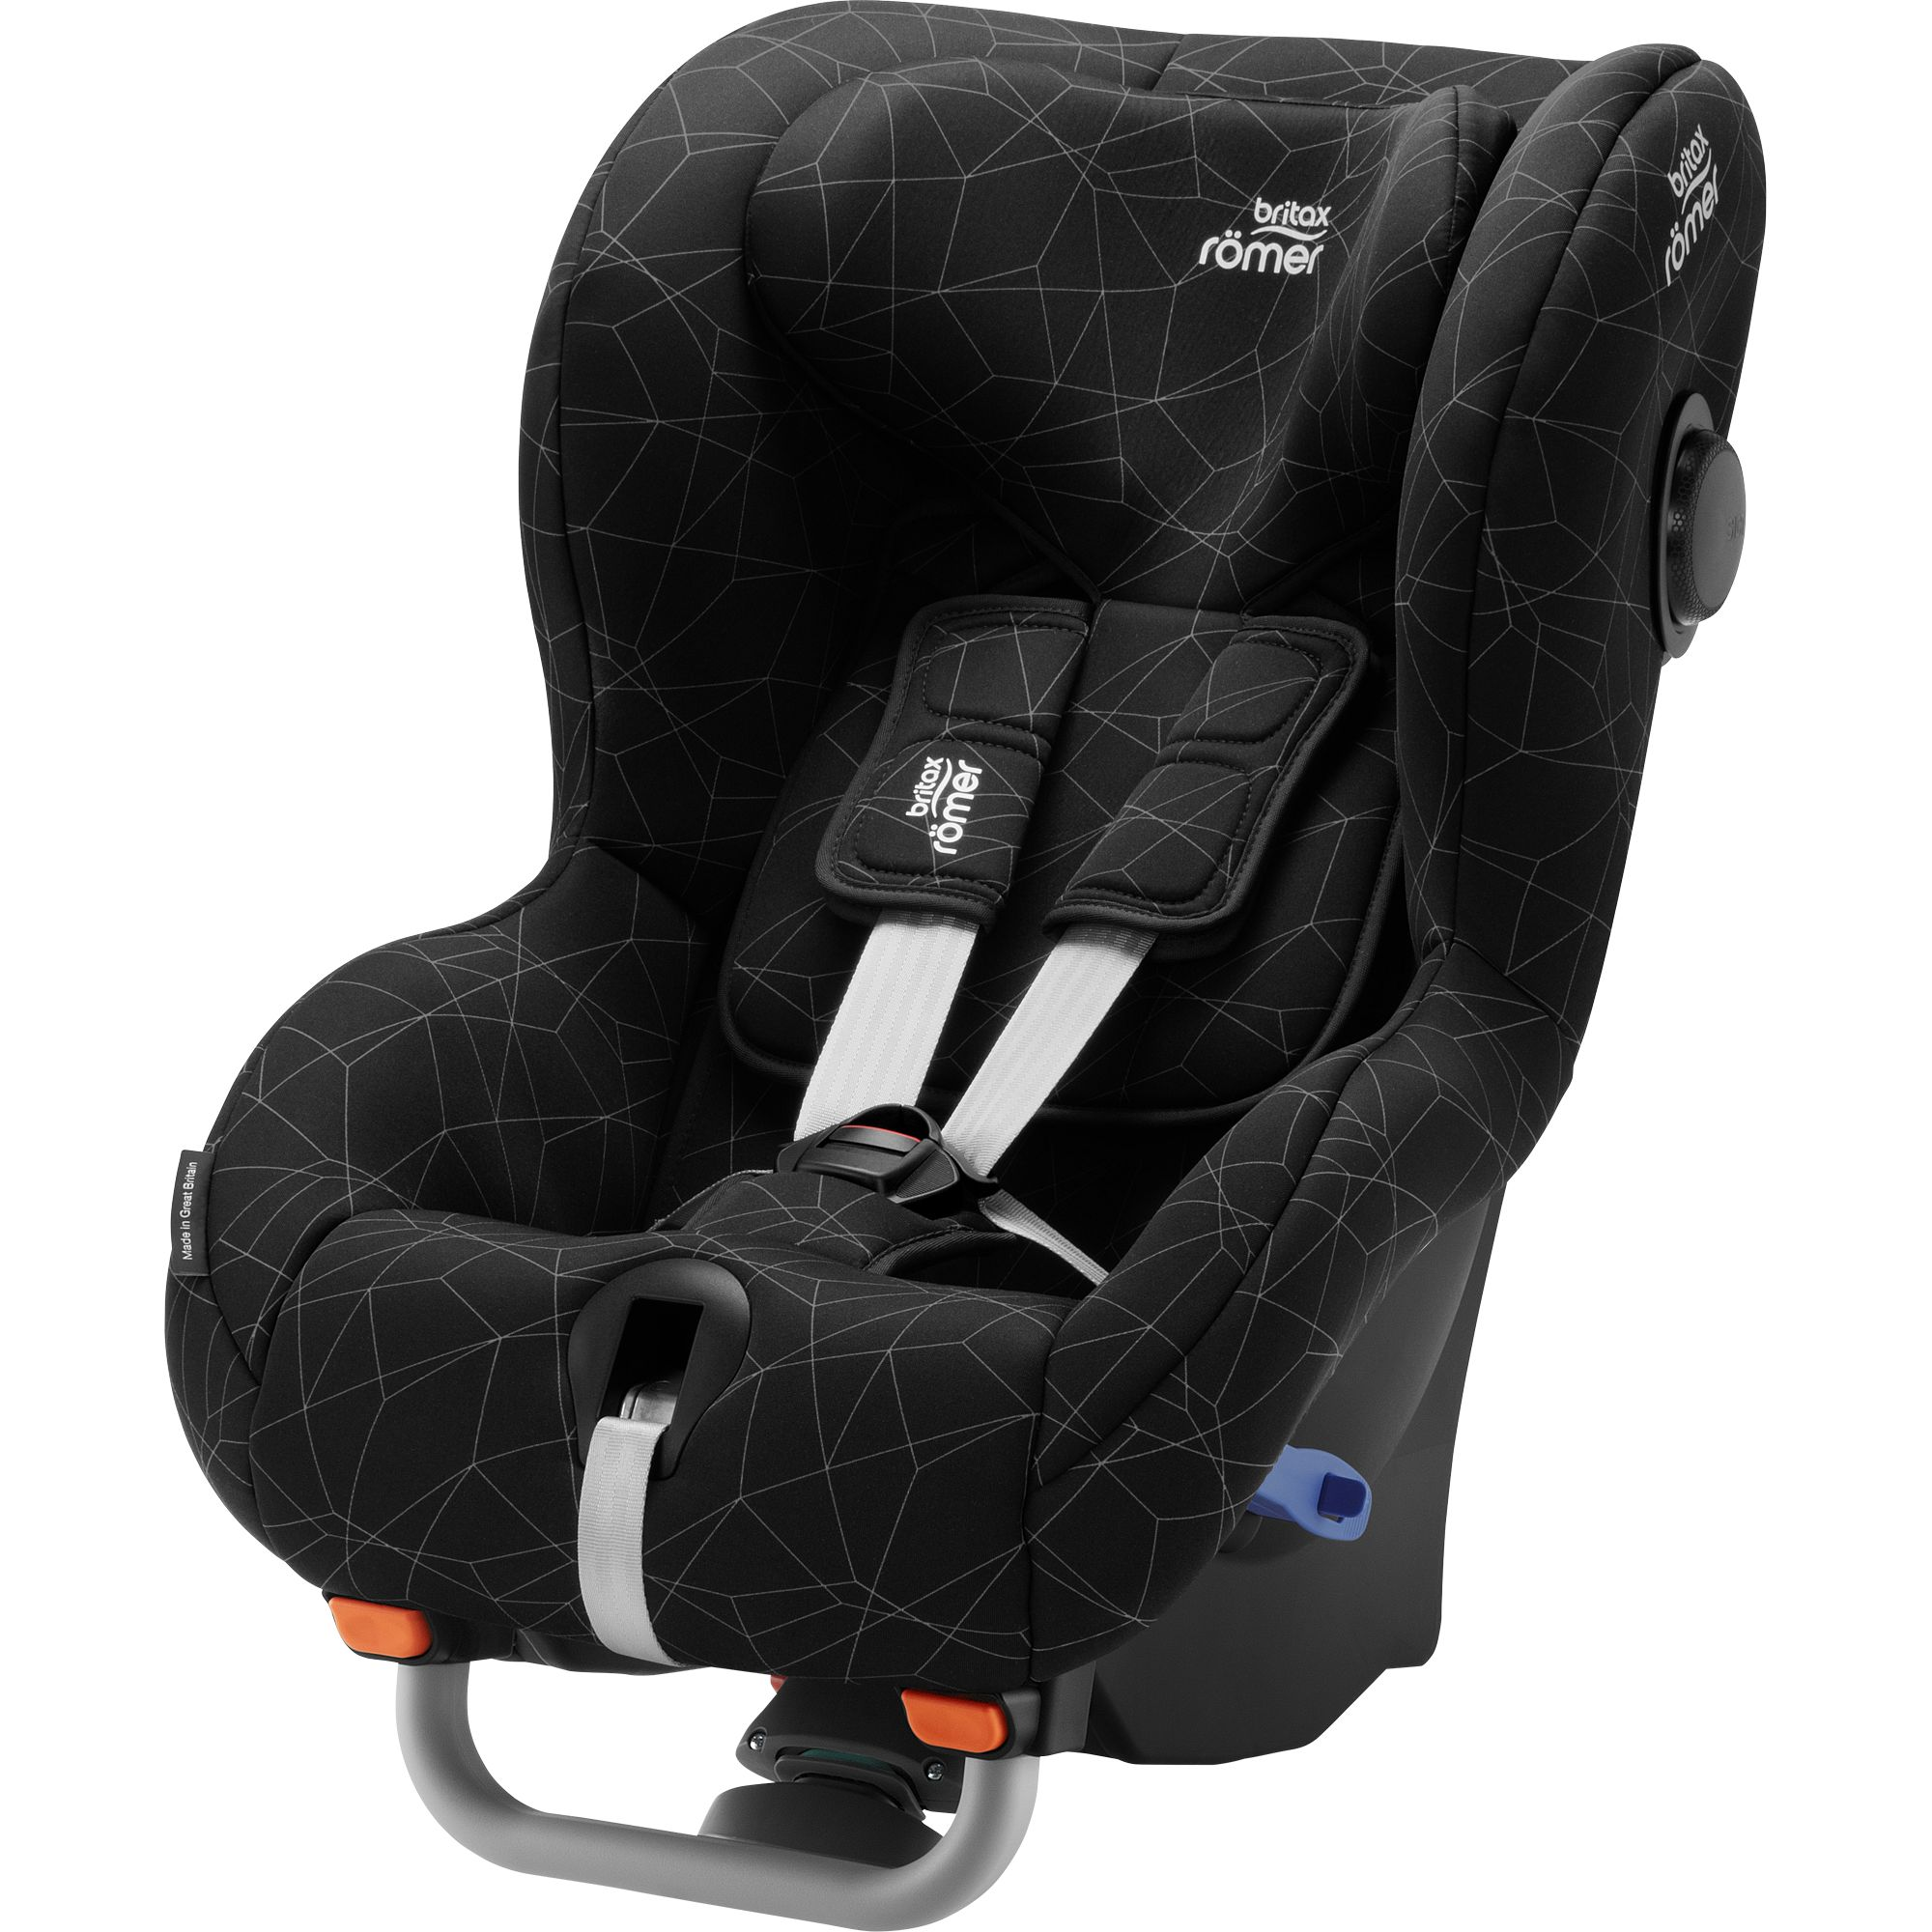 BRITAX  Autosedačka Max-Way Plus, Crystal Black